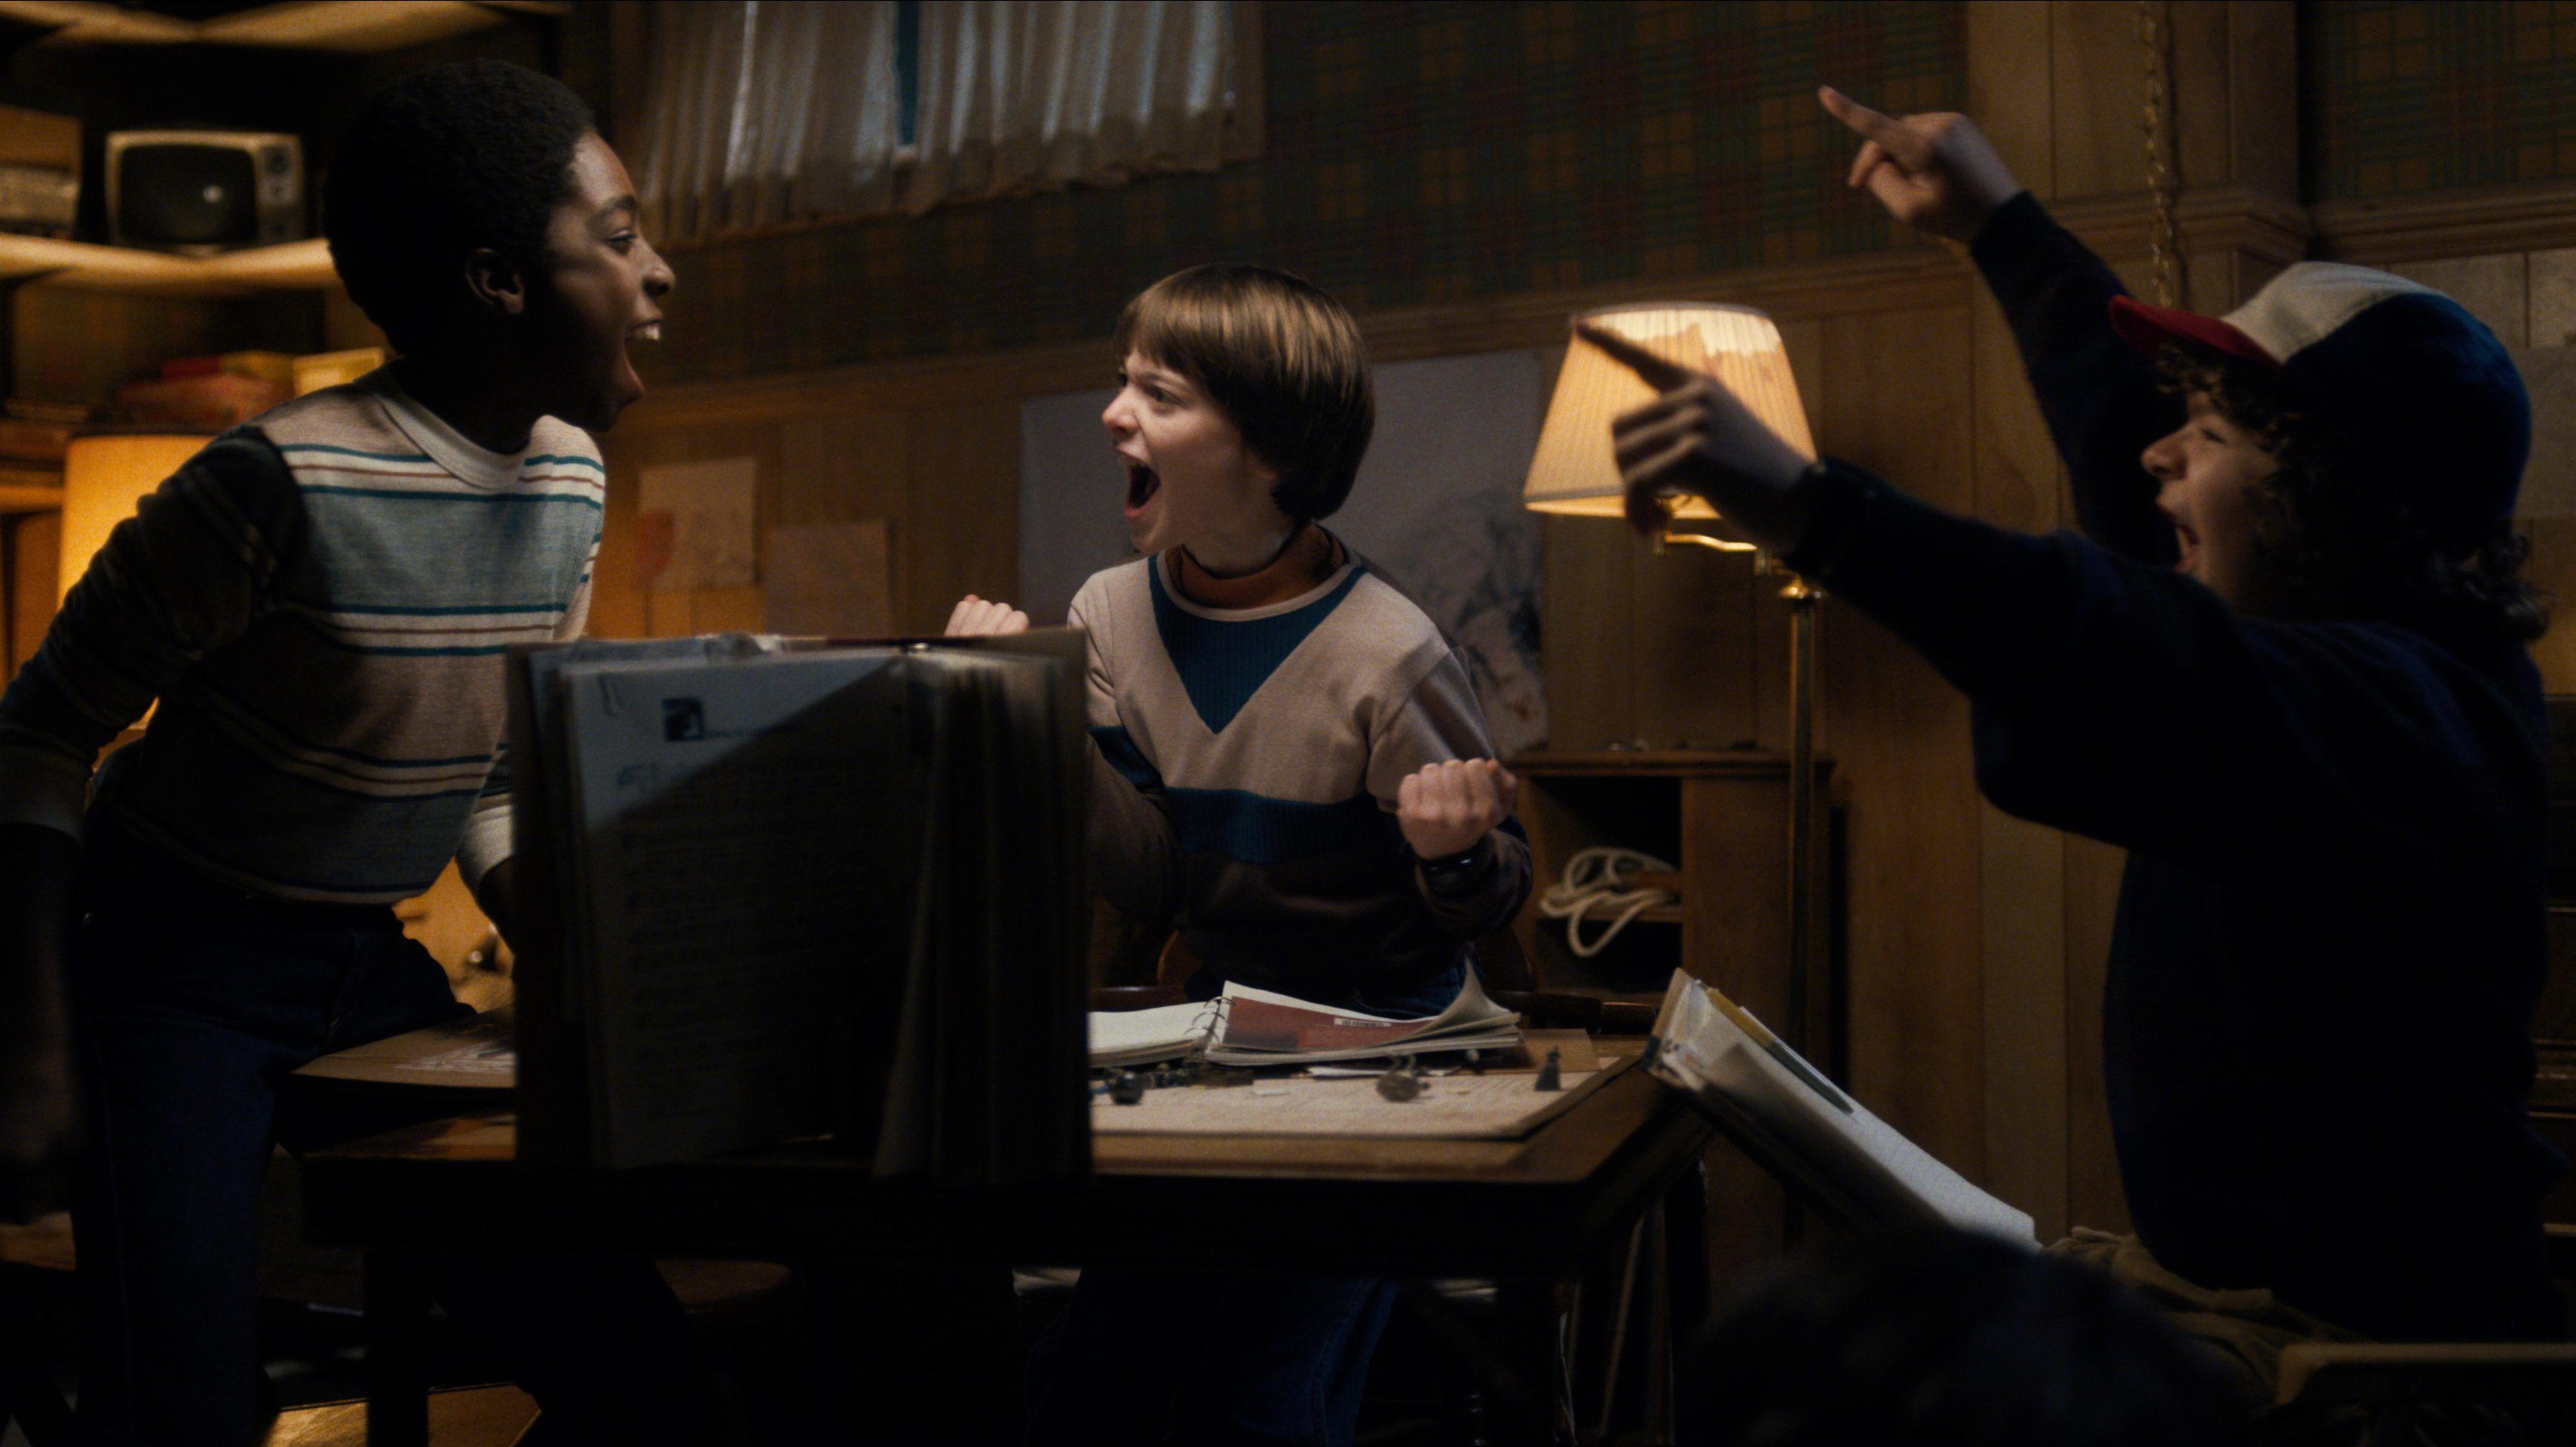 Stranger Things creators accused of stealing story